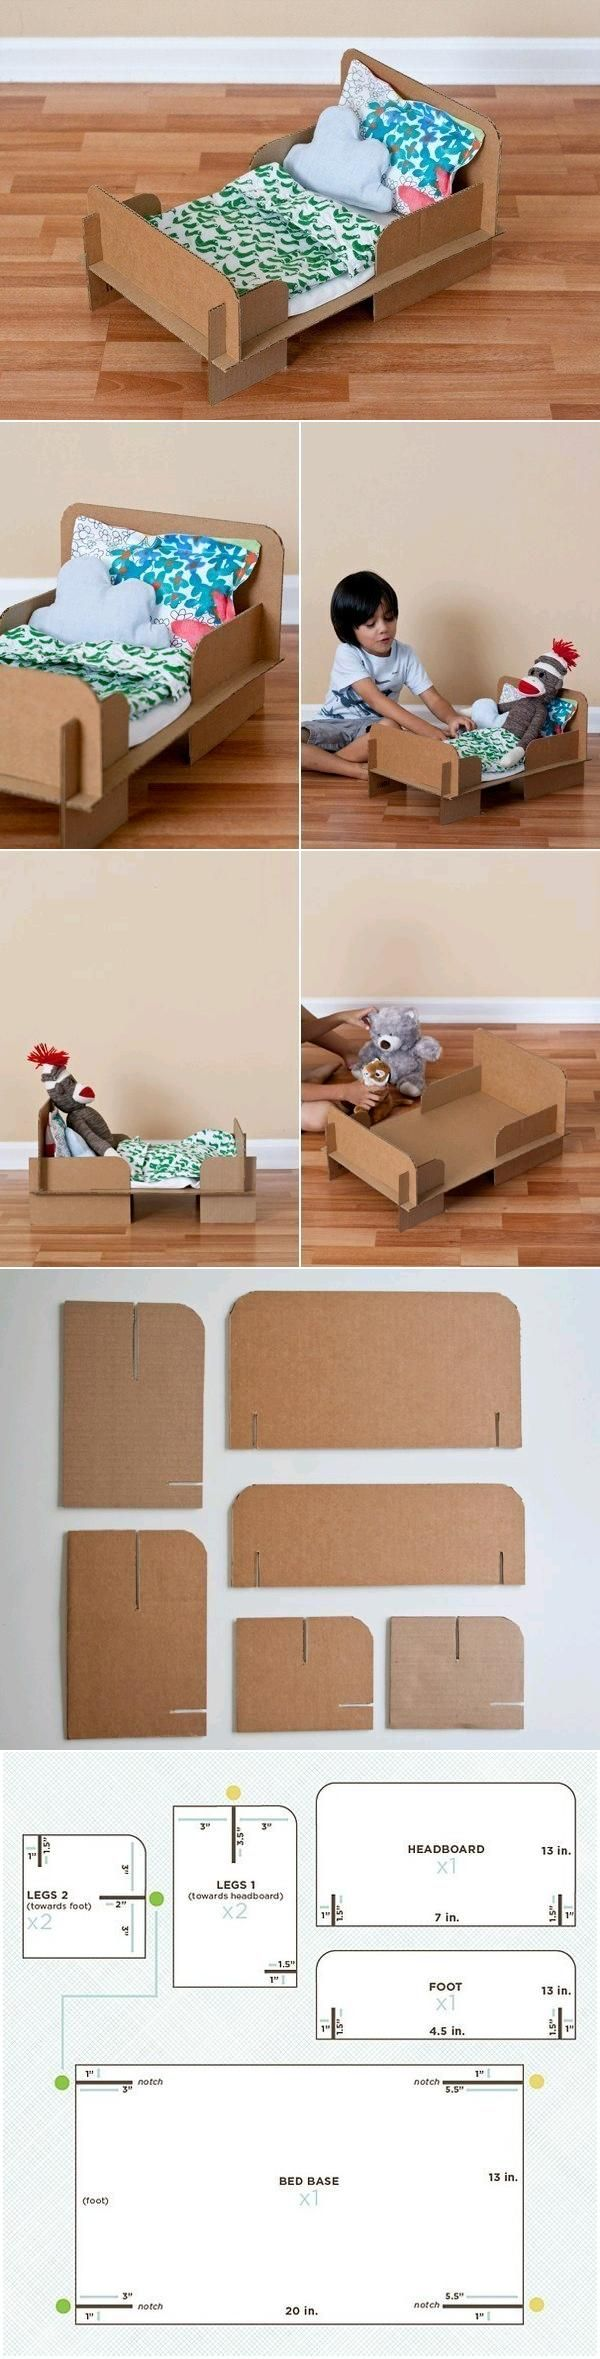 DIY Cardboard Bed. I'm thinking about making a really basic bed for my character. I was thinking a lightbulb or tissue box to begin with but I can't get any the right size so now I'm thinking something like this. Although I think my brother's been burning all the cardboard in the house lately. Have to see if I can get my hands on some